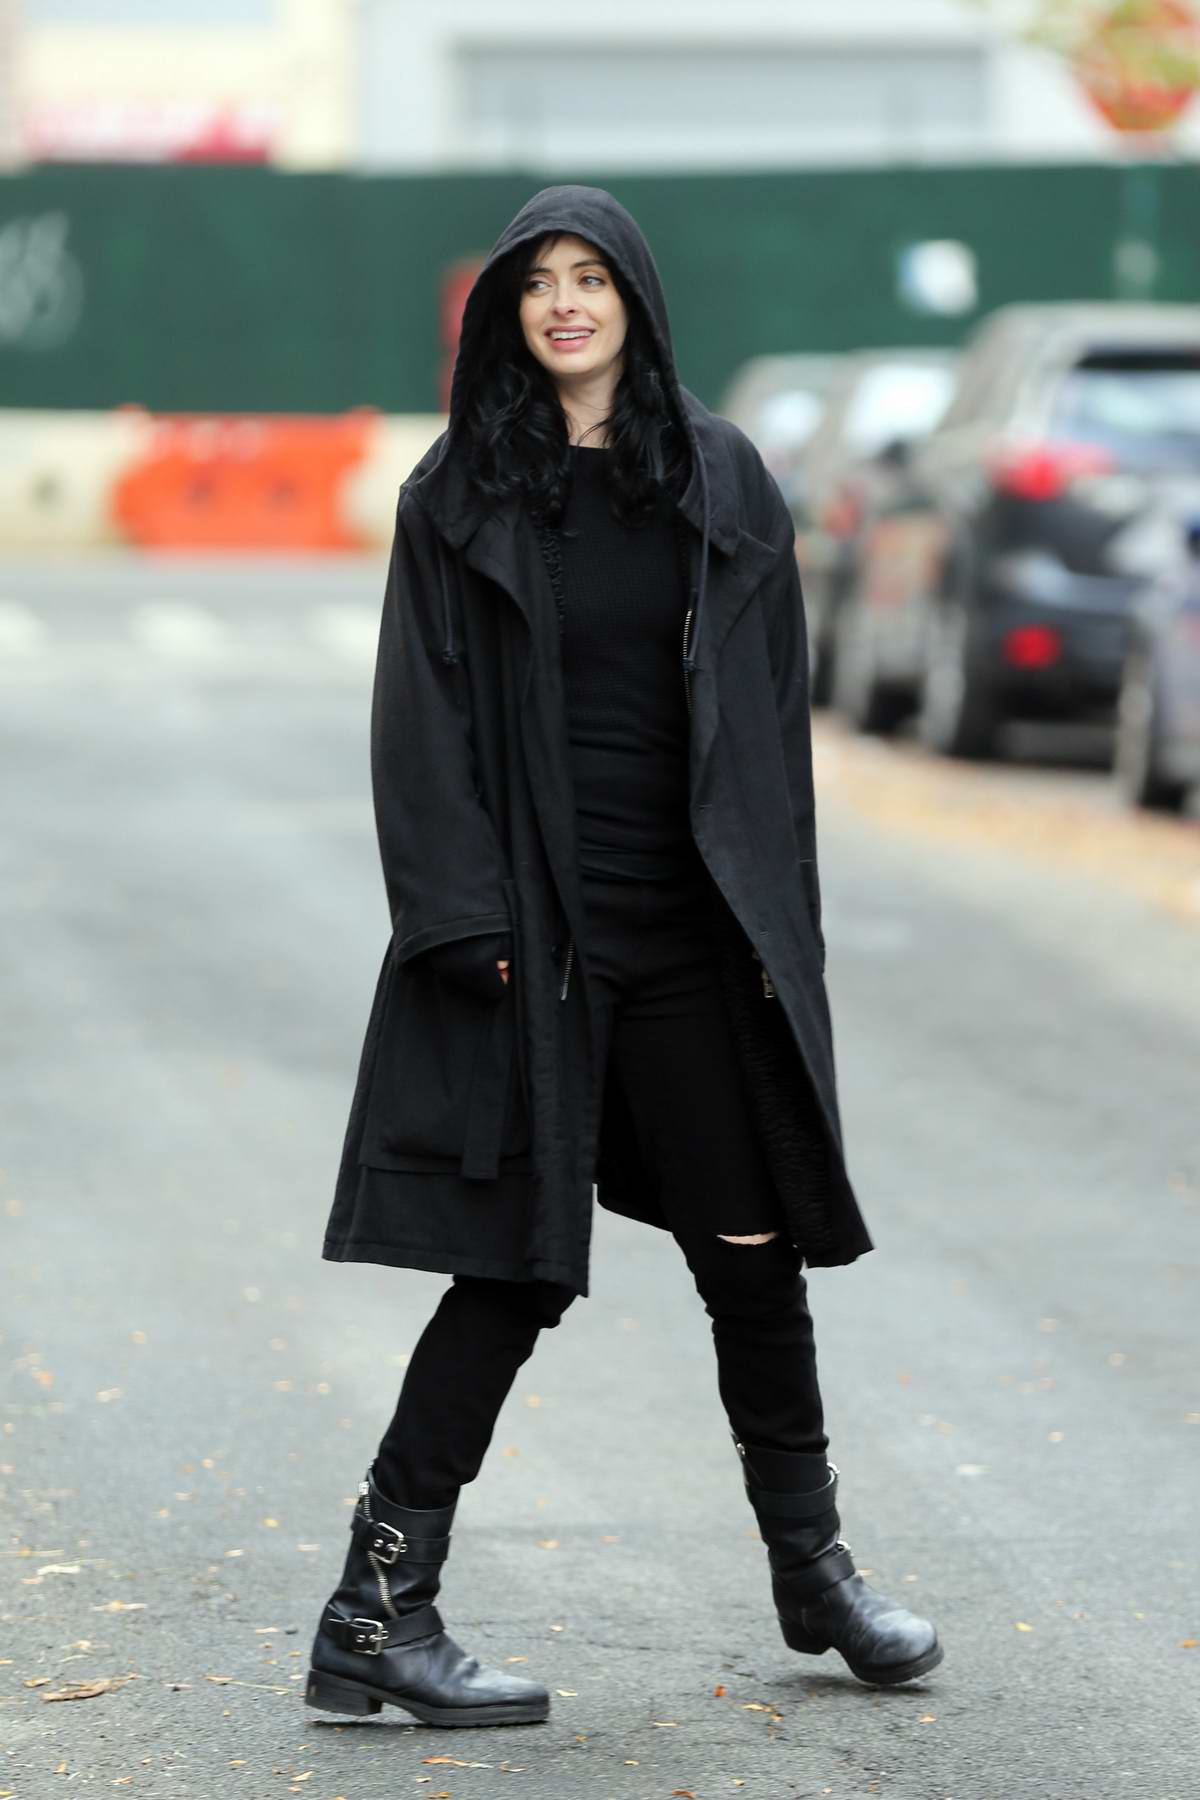 Krysten Ritter spotted on the set of Jessica Jones while filming scenes for Season 3 in New York City